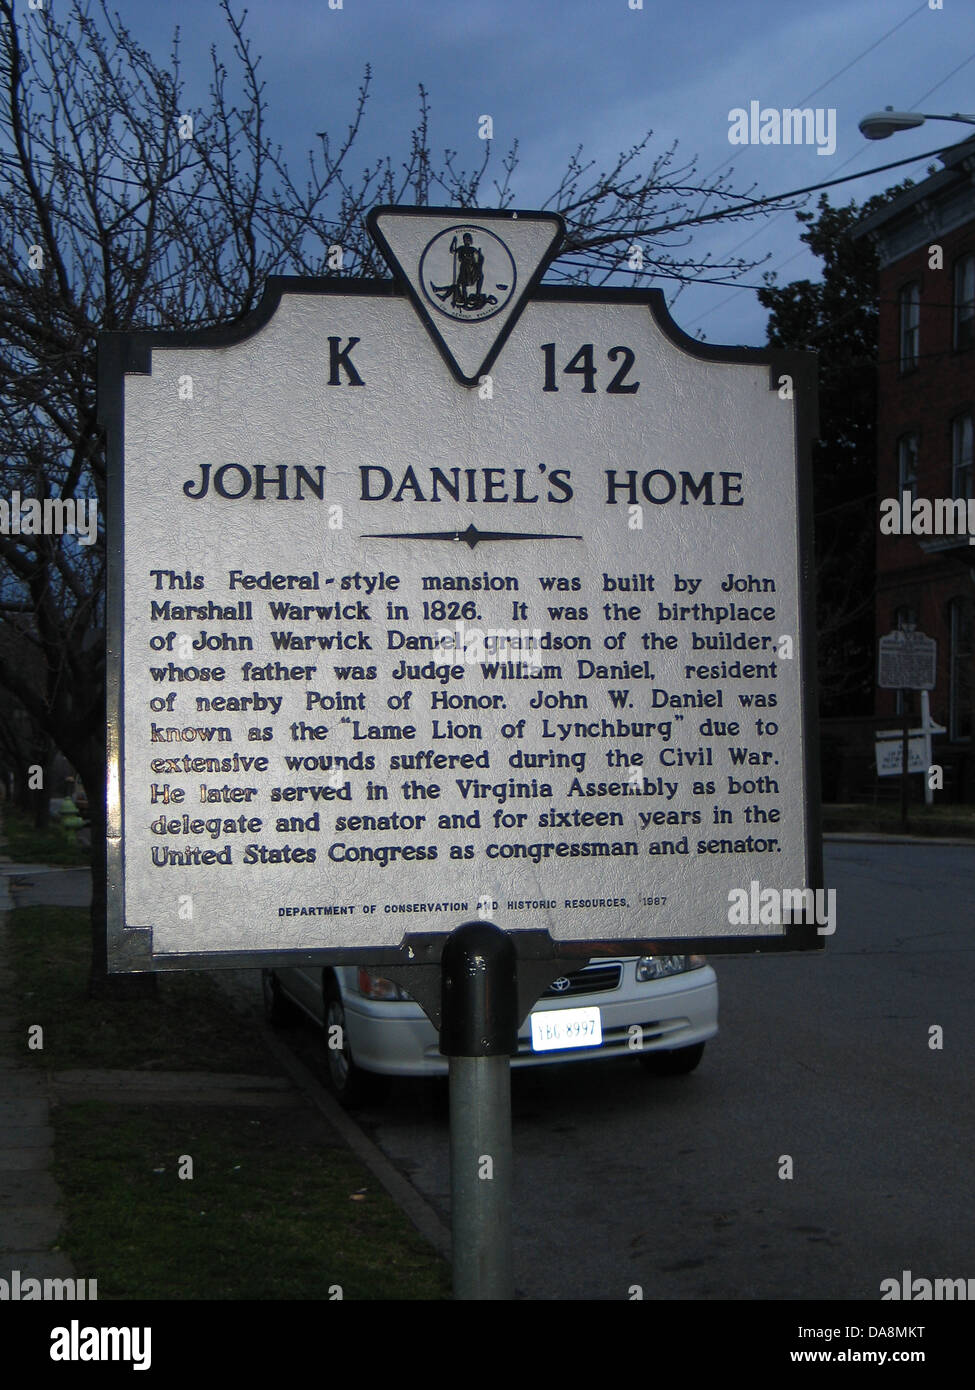 JOHN DANIEL'S HOME  The Federal-style mansion was built by John Marshall Warwick in 1826. It was the birthplace Stock Photo